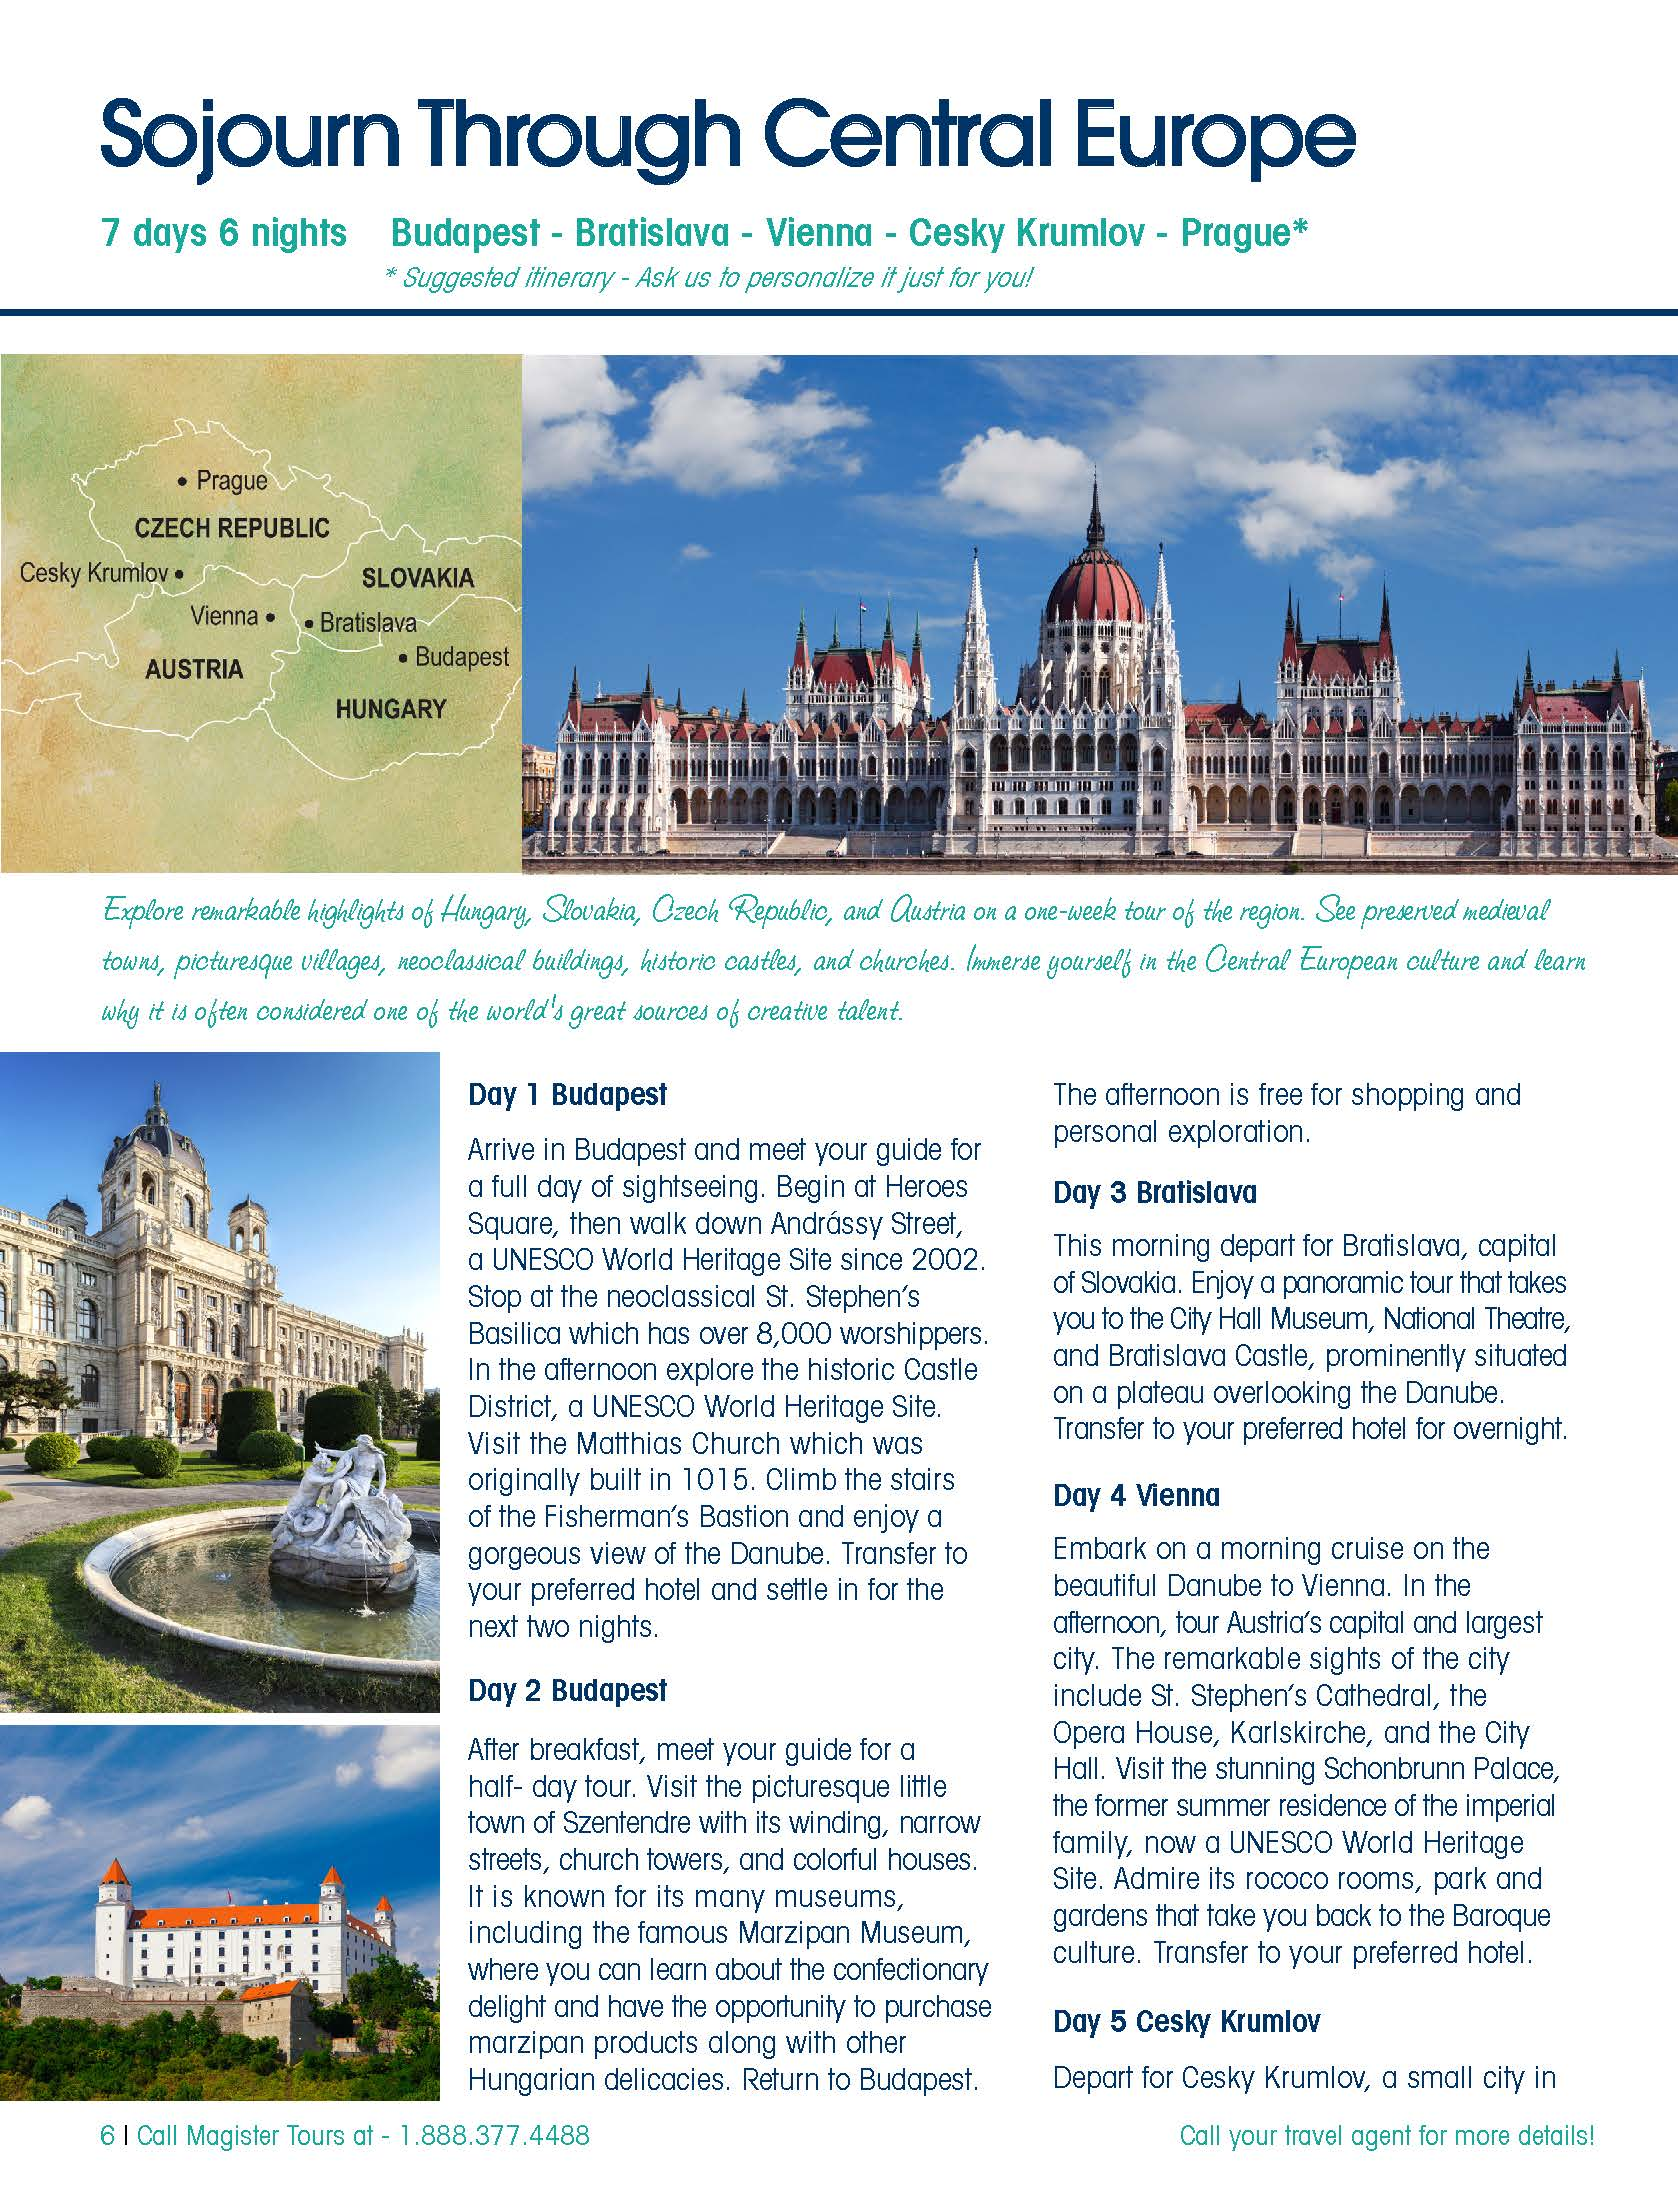 Central Europe & Beyond Brochure - Magister Tours-Tours through